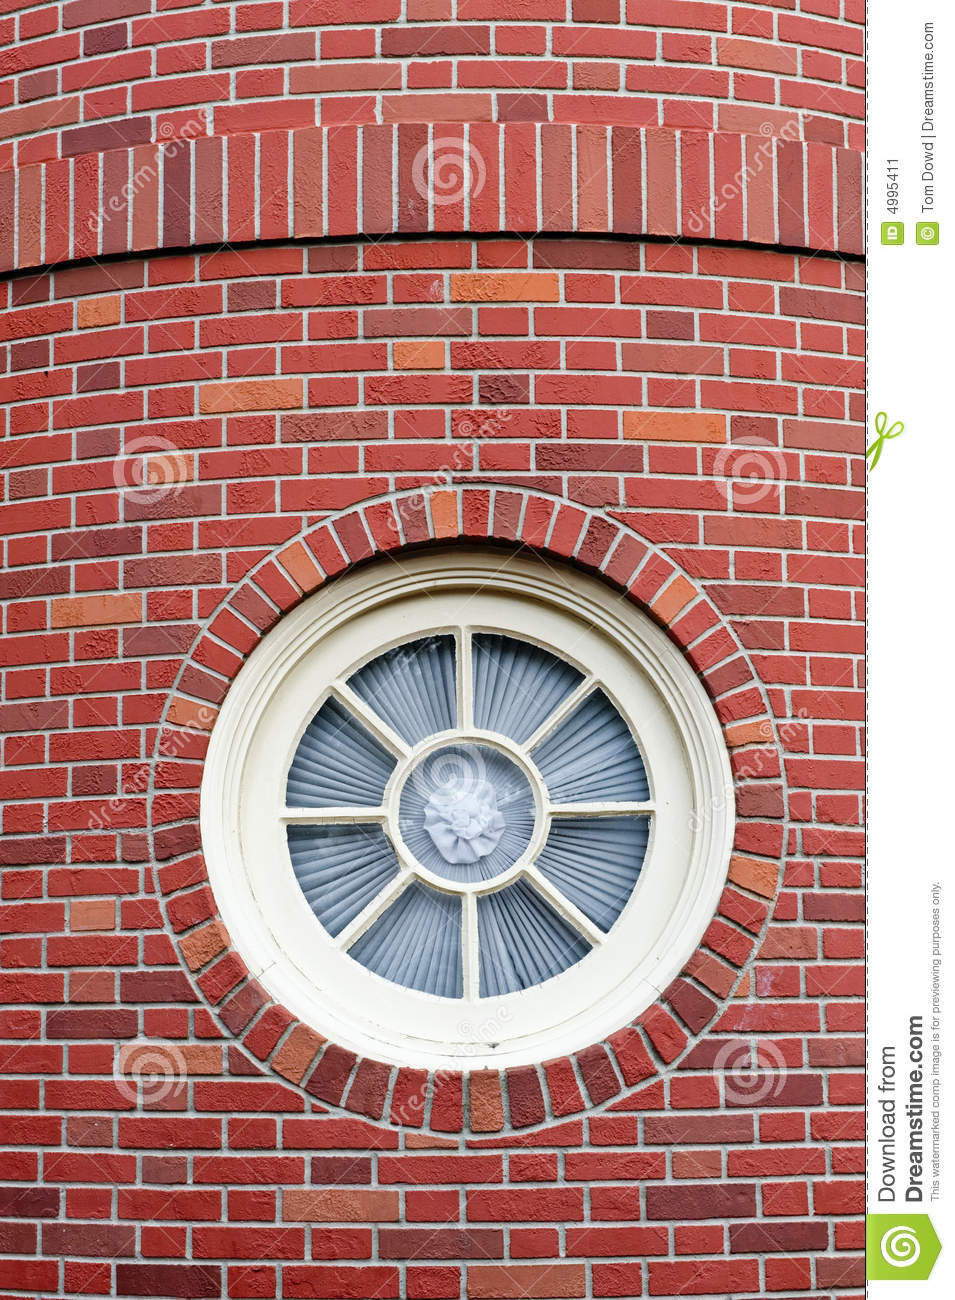 Circular window stock image image 4995411 for Rundes fenster